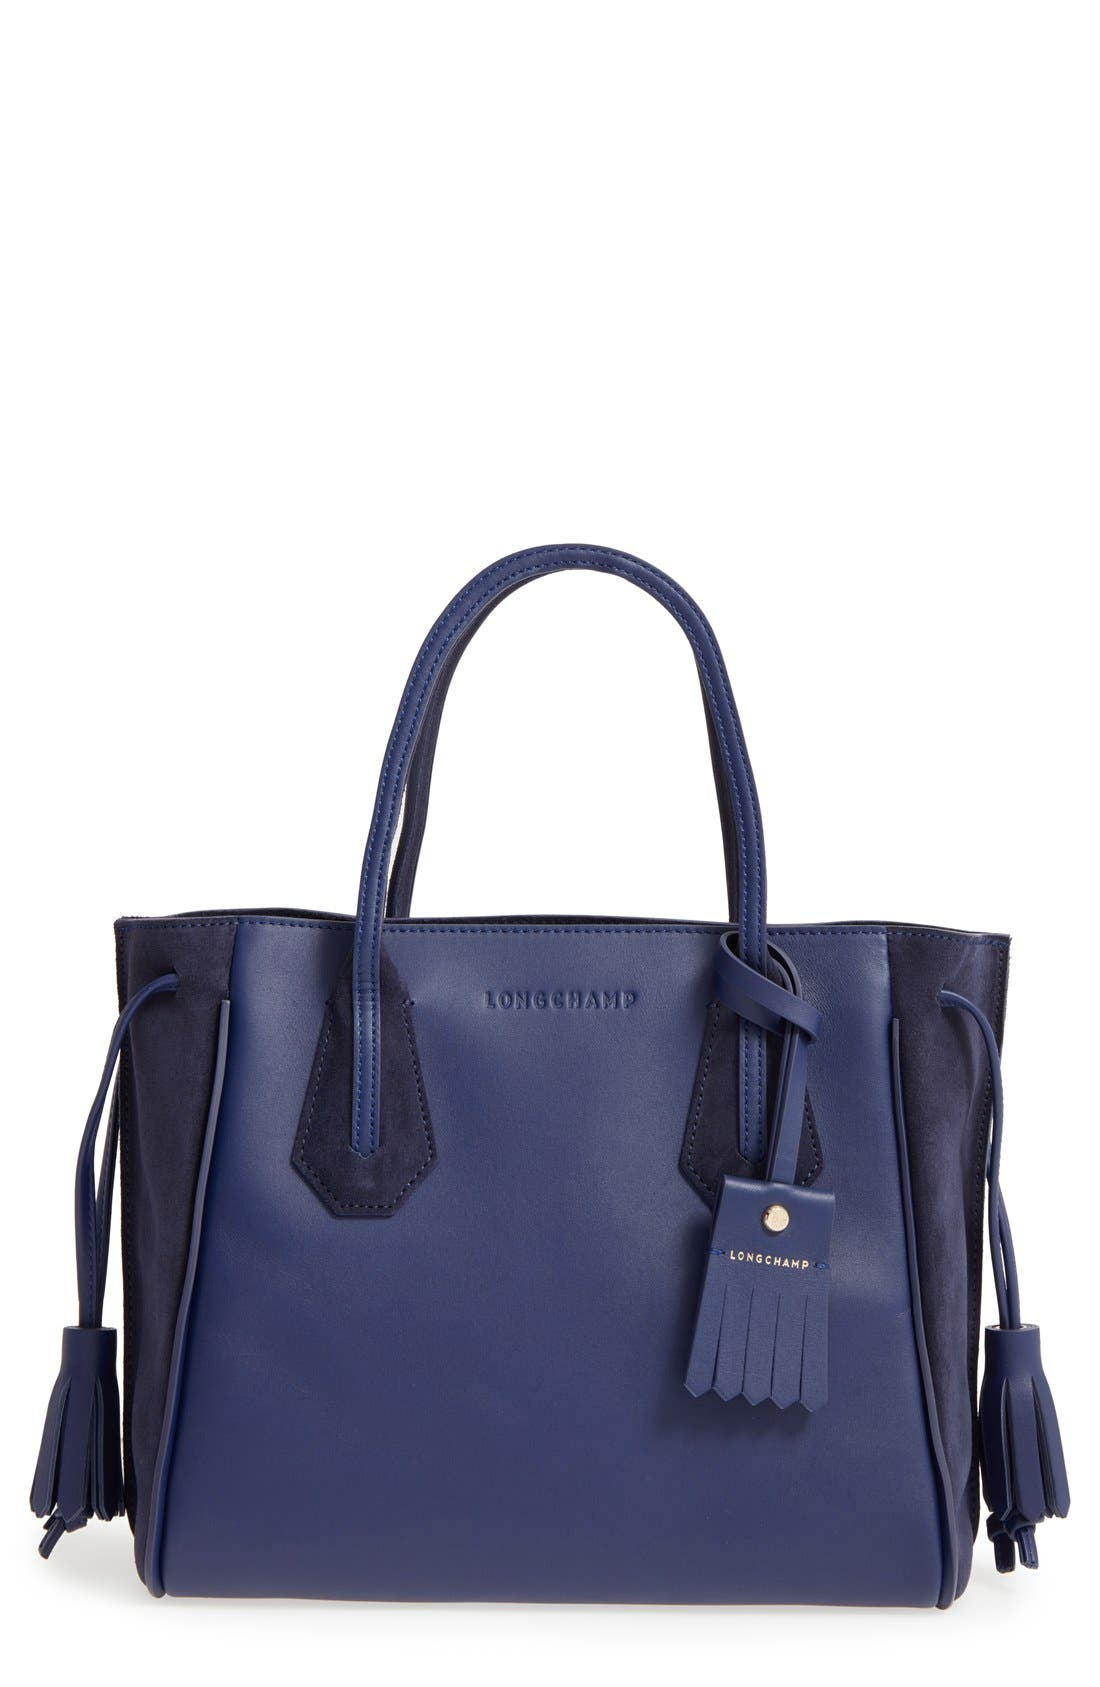 Alternate Image 1 Selected - Longchamp 'Small Penelope Fantasie' Leather Tote